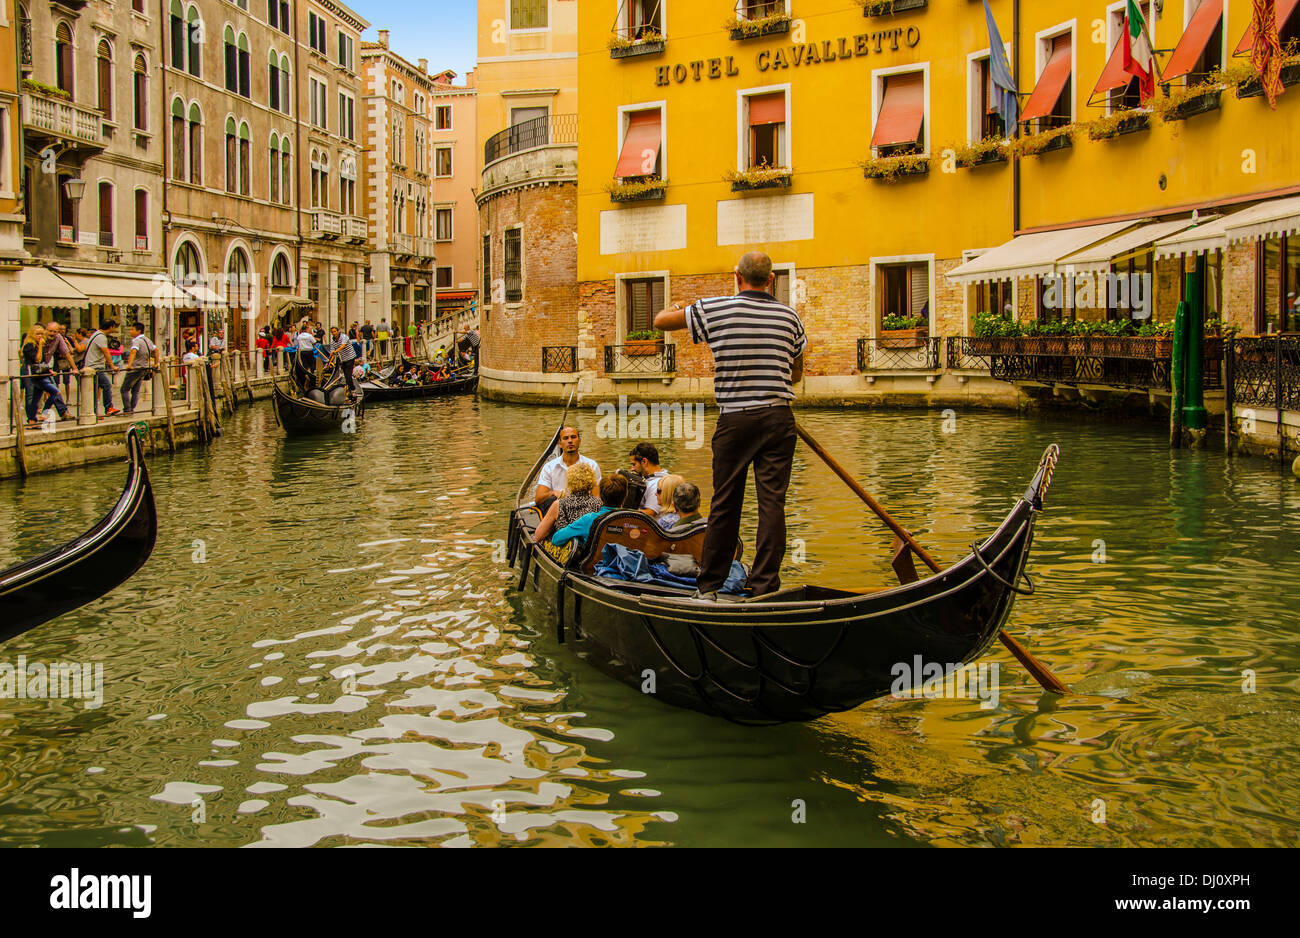 Gondolier setting out for a scenic tour of Venice canals. - Stock Image